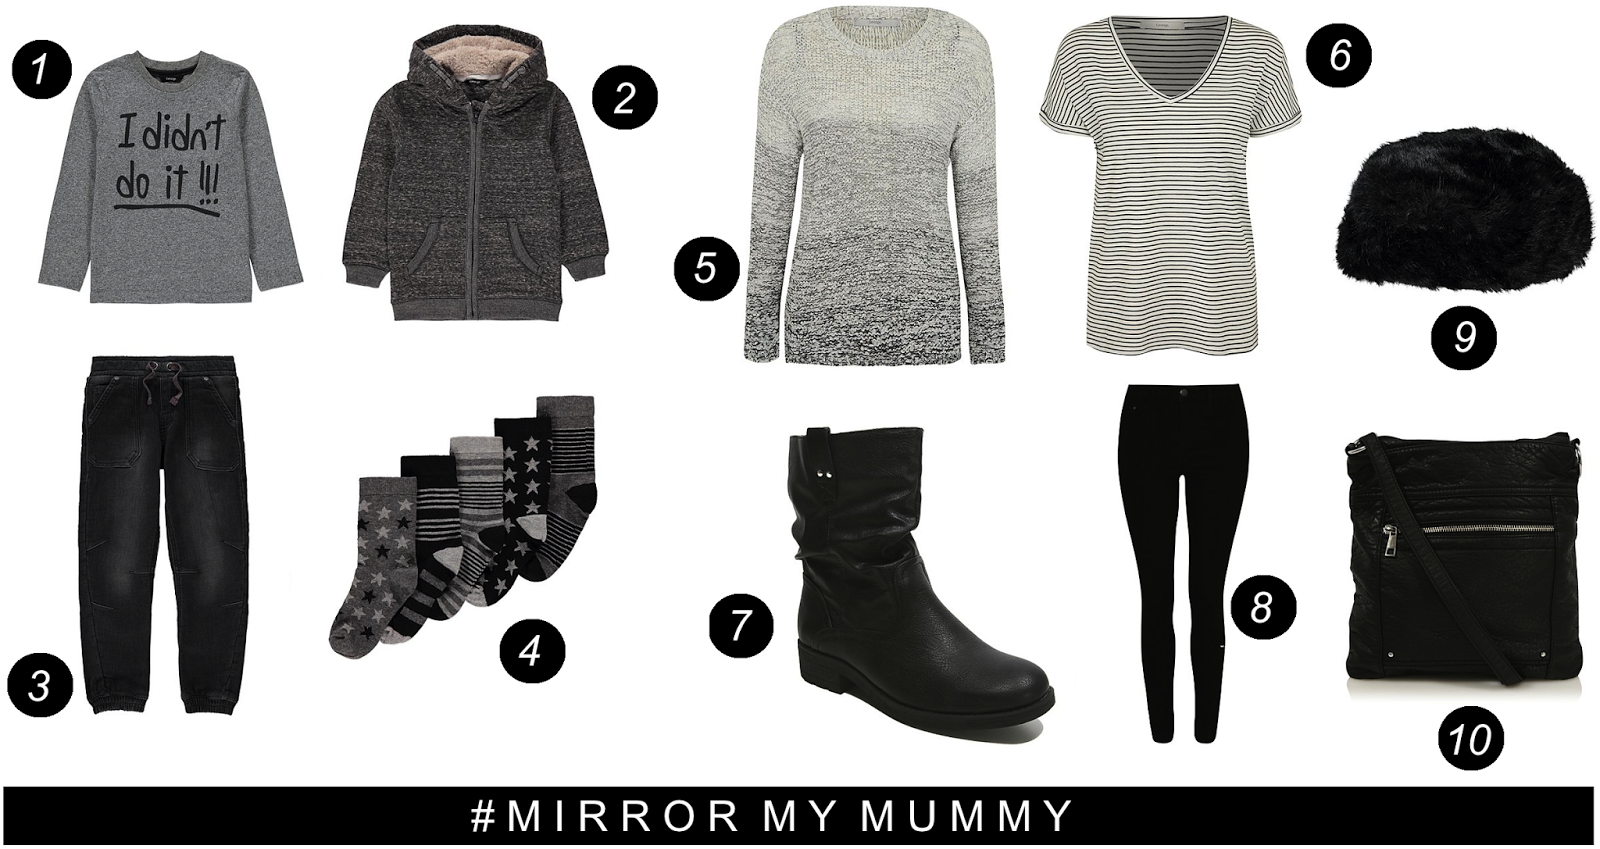 #MirrorMyMummy (Featuring George At Asda)